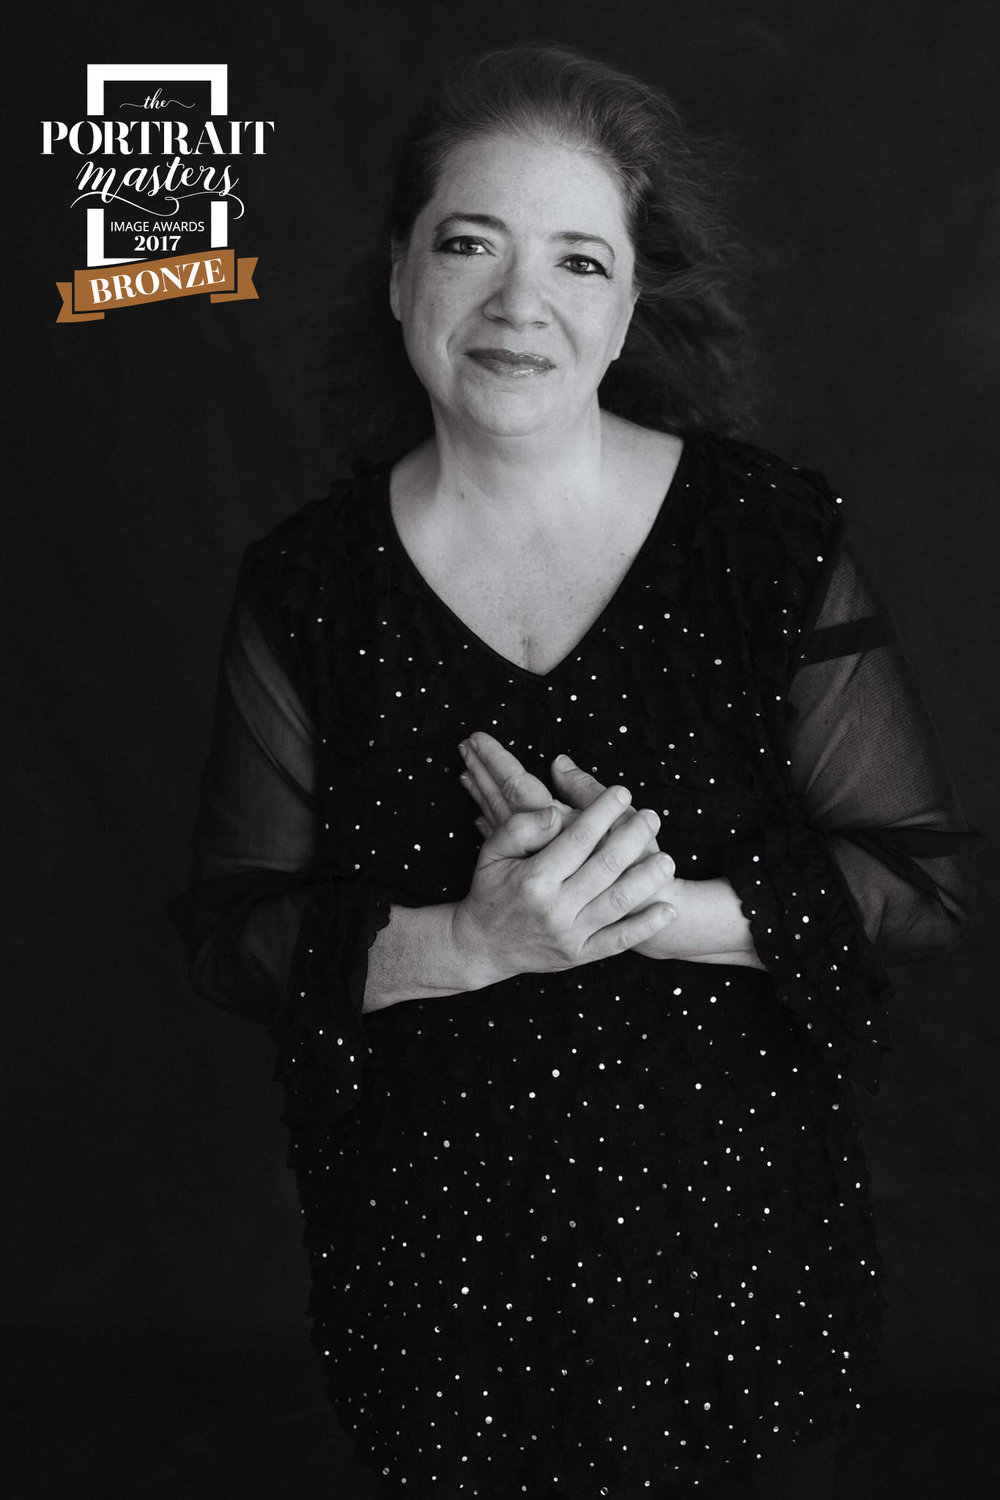 """I am flabbergasted that a photo you did of me captured an award. I am honored! Congratulations!"" - Rose Marie Viera"